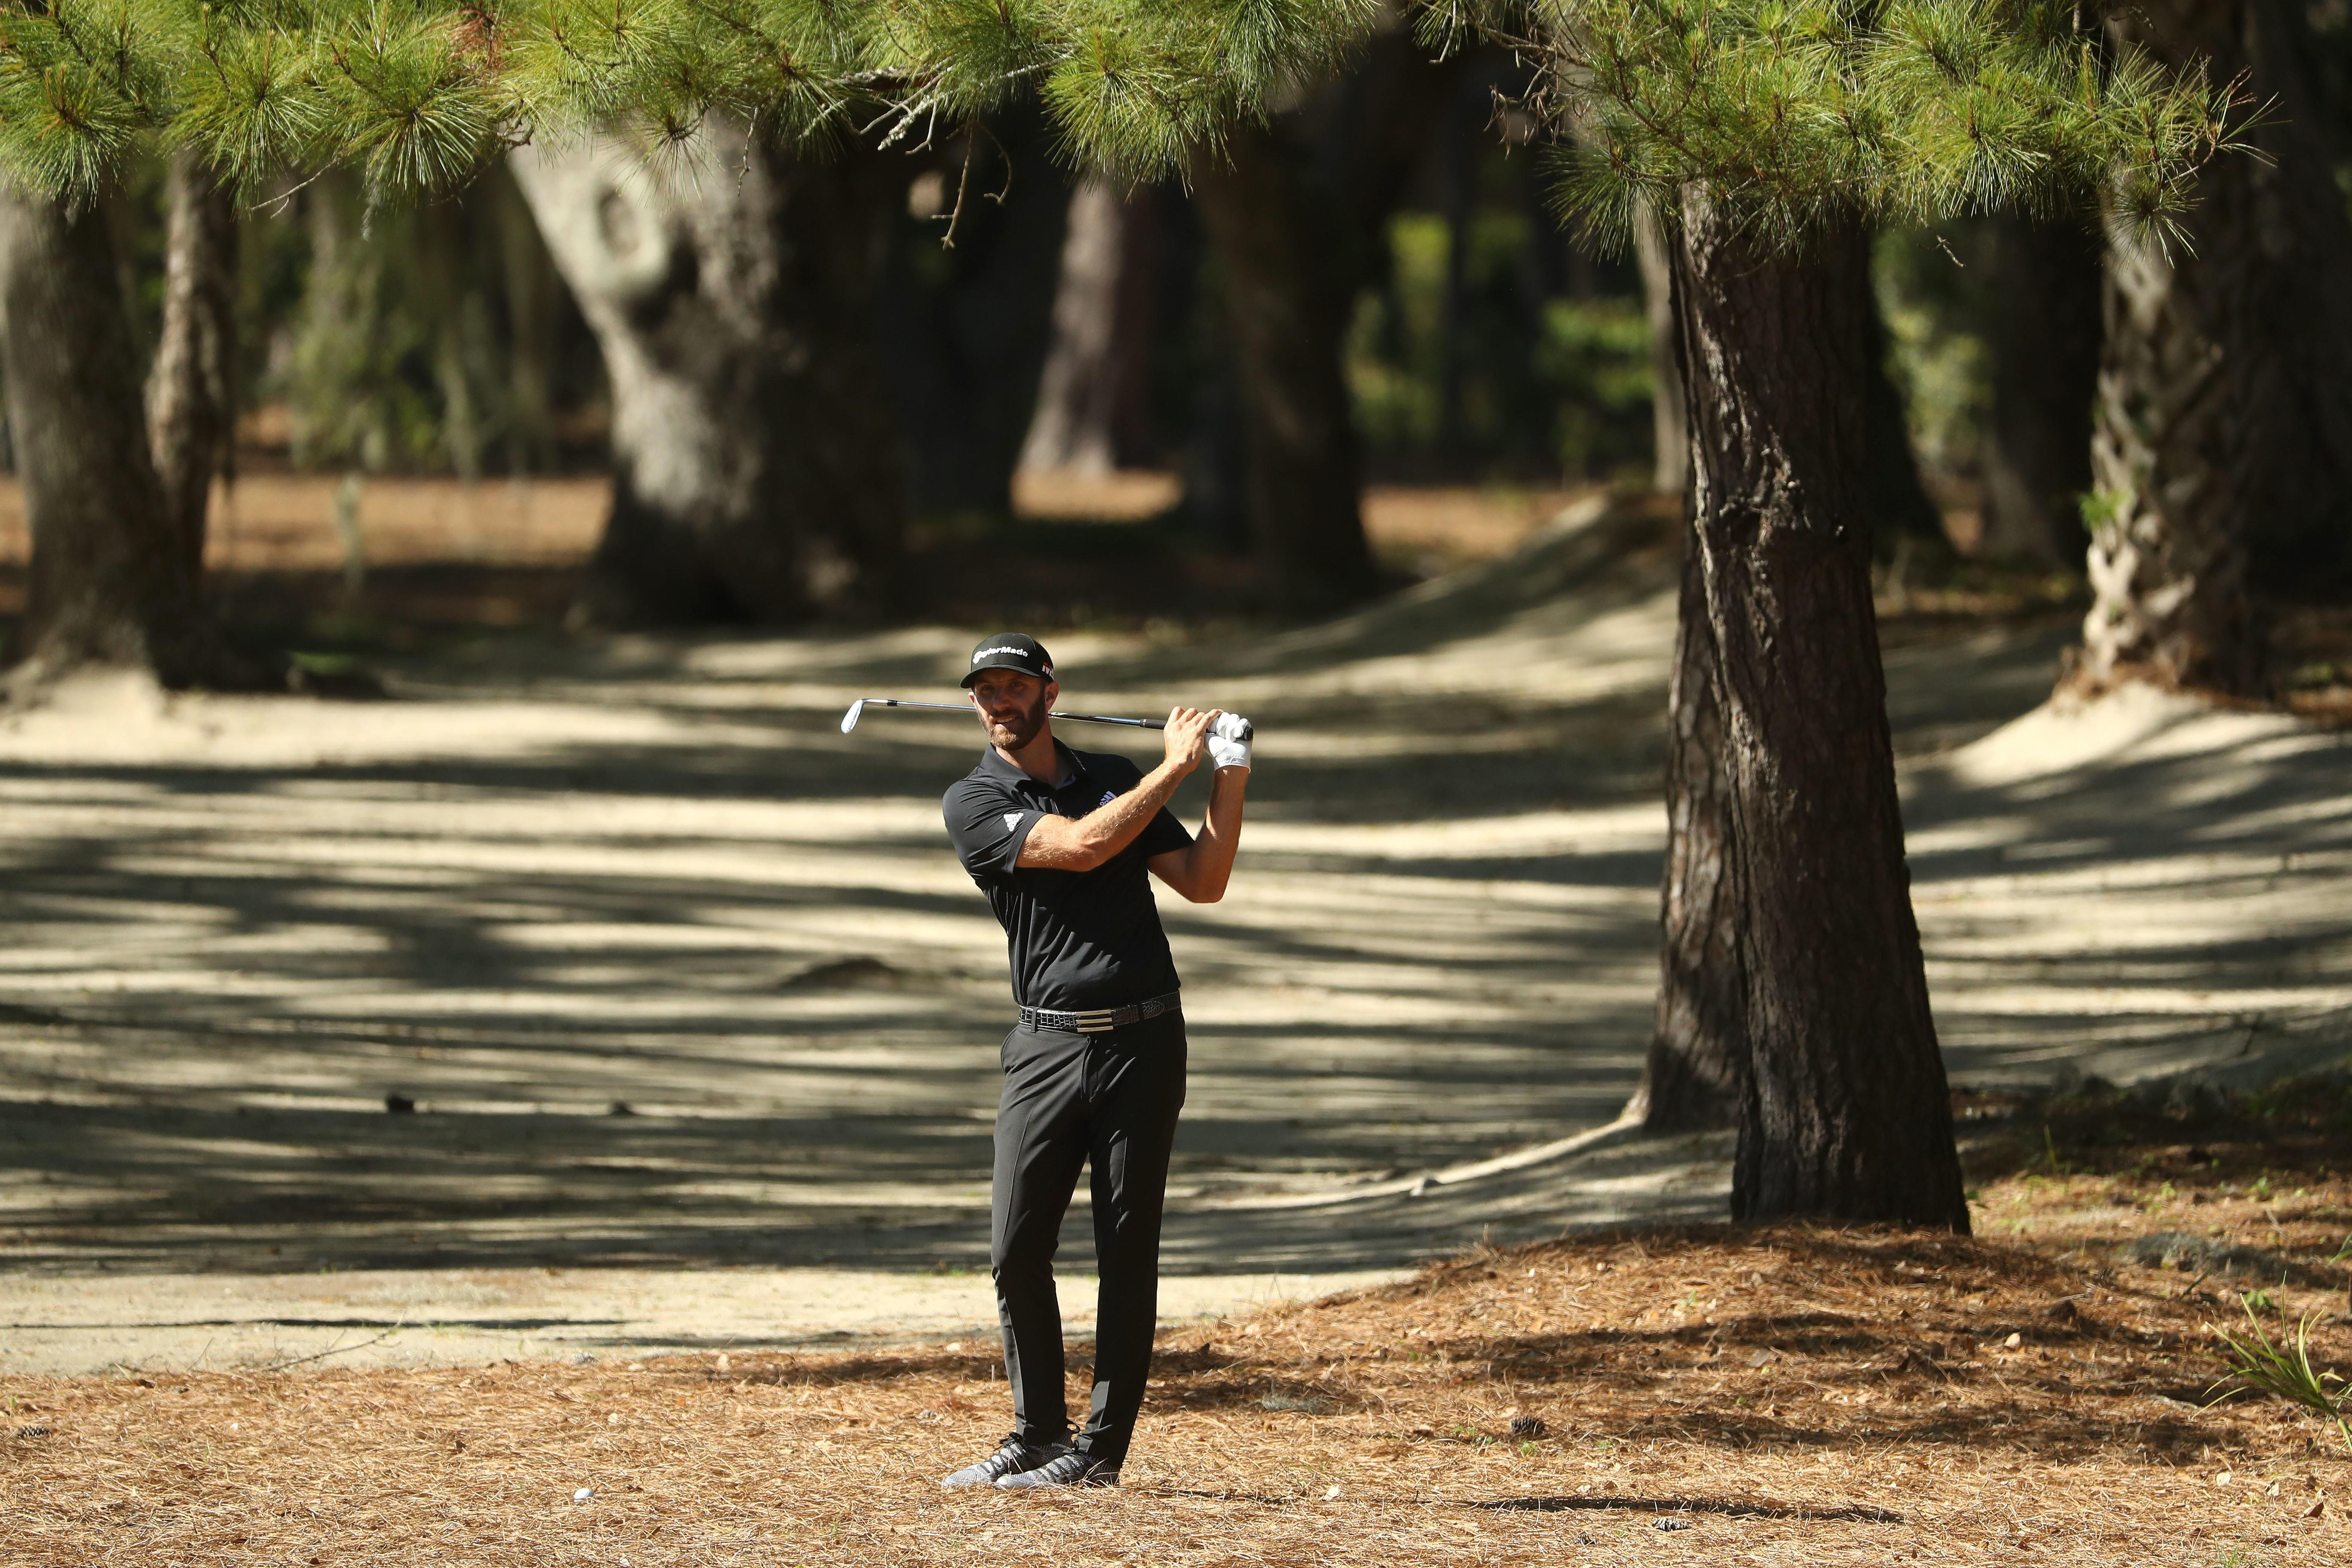 Dustin Johnson fails spectacularly to rescue the RBC Heritage from Masters fatigue and Tiger's absence